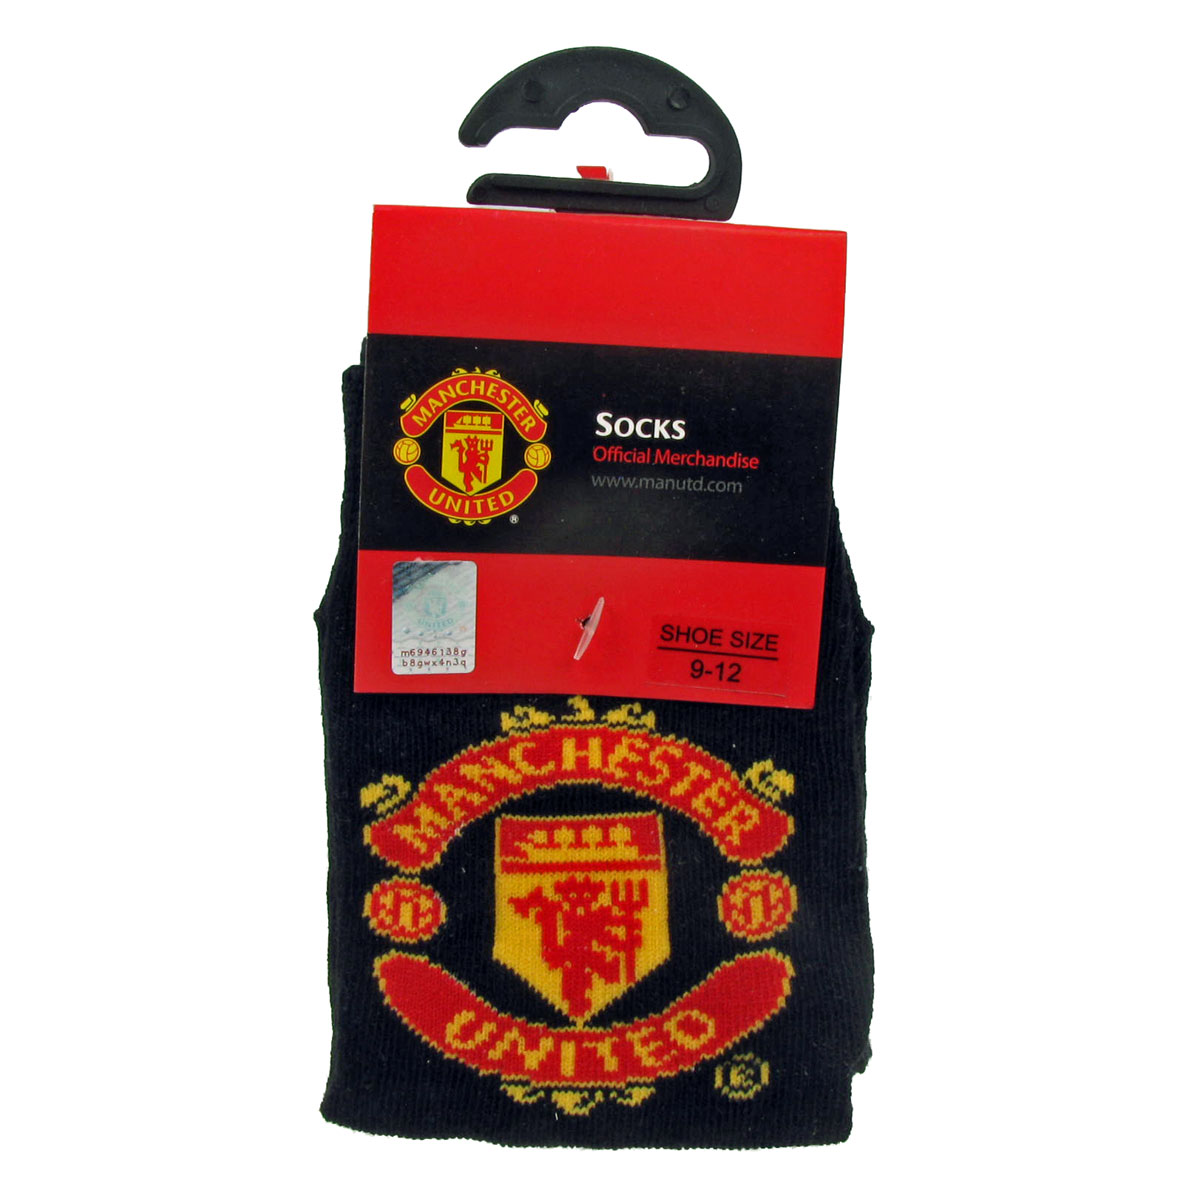 Official Manchester Utd Kids Socks Size 9–12 Black BN Enlarged Preview